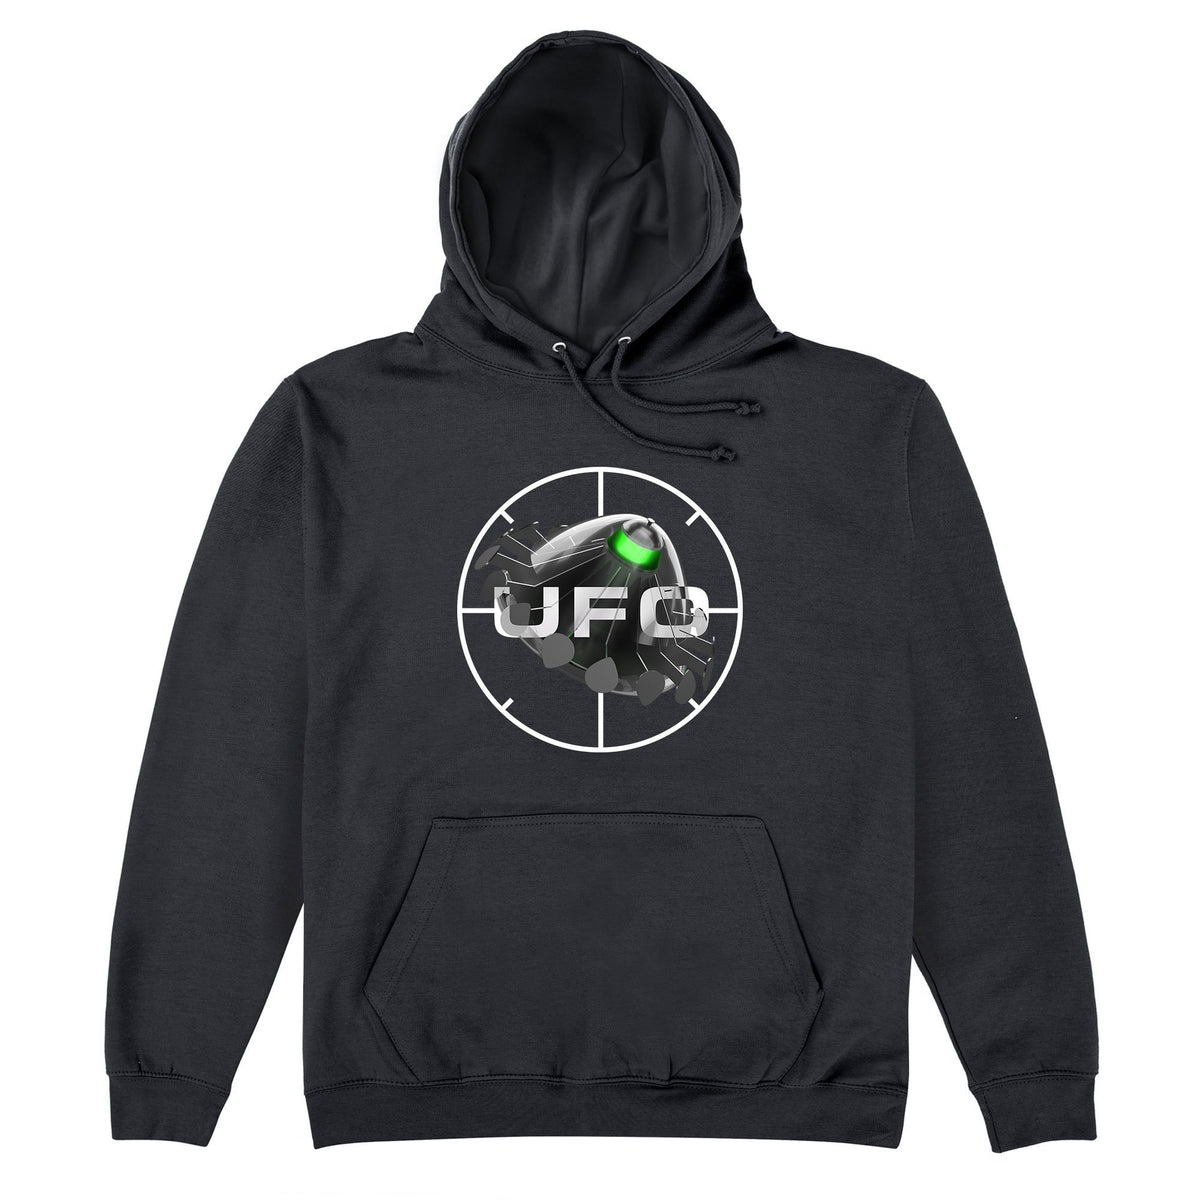 UFO Target Hoodie [Official & Exclusive] - The Gerry Anderson Store